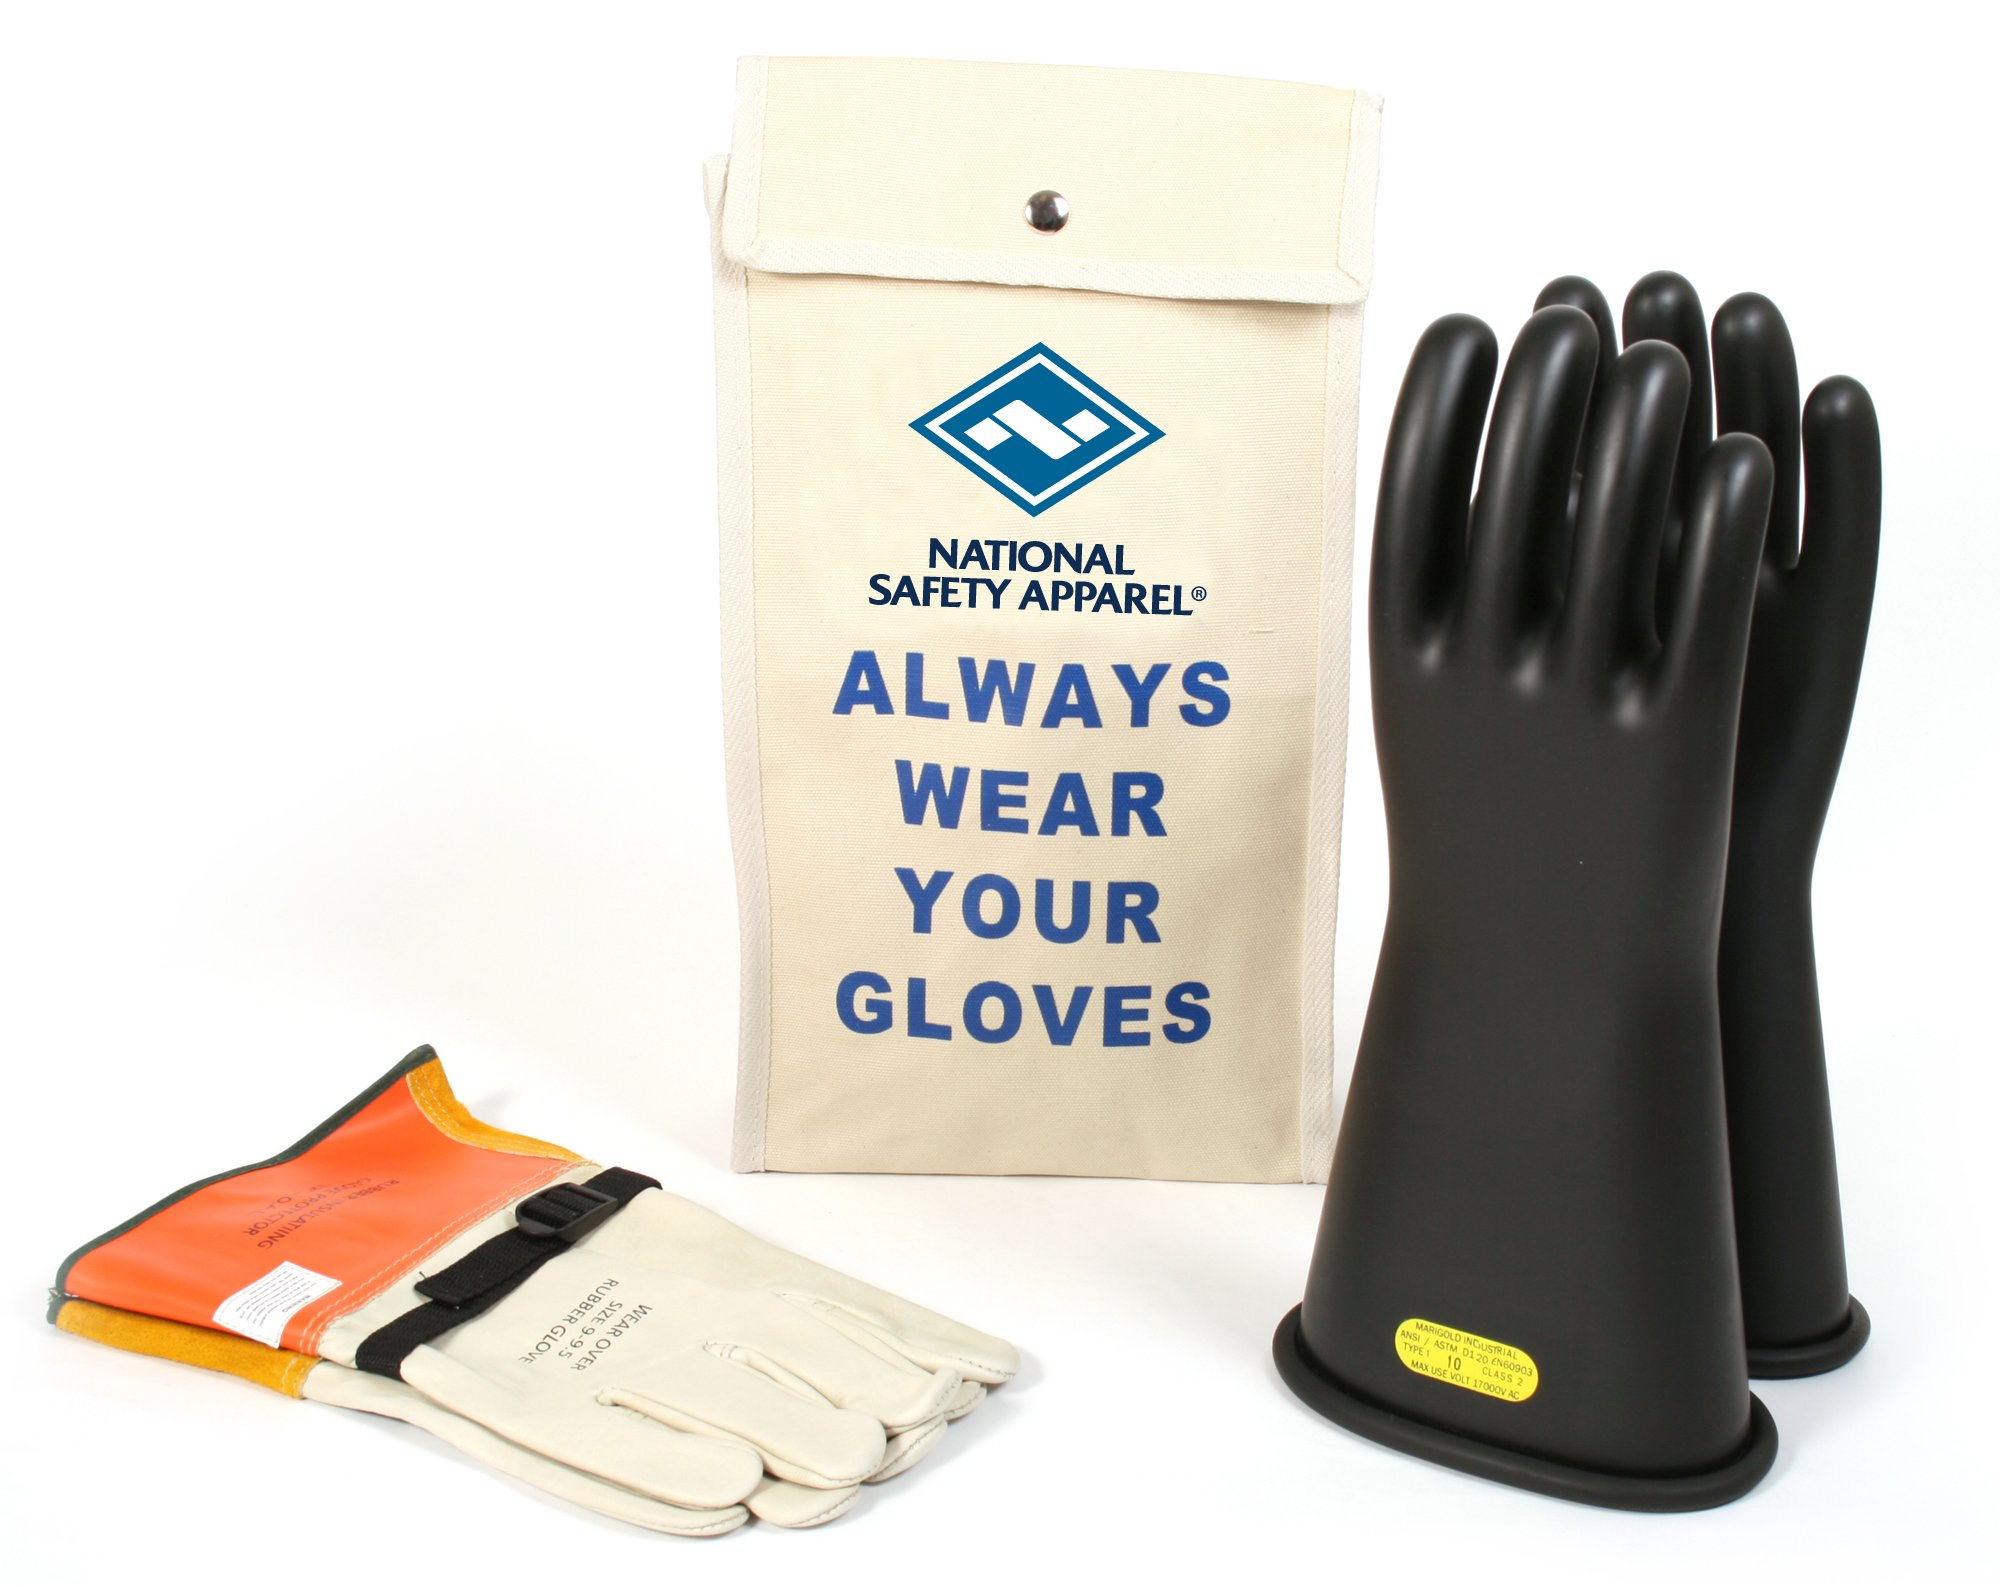 National Safety Apparel Class 2 Black Rubber Voltage Insulating Glove Kit with Leather Protectors, Max. Use Voltage 17,000V AC/ 25,500V DC (KITGC210)